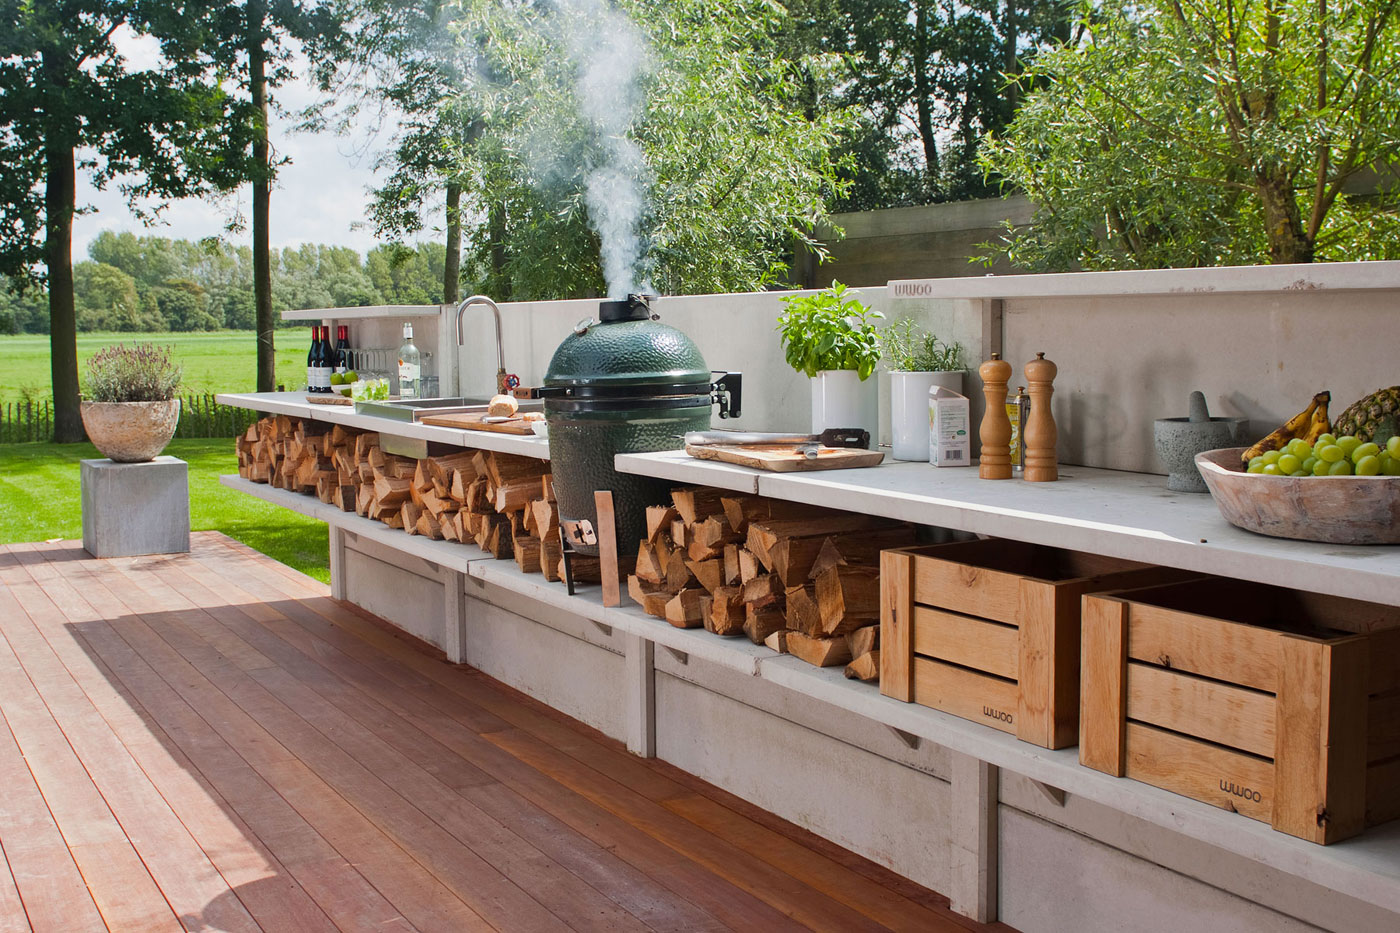 15 best outdoor kitchen ideas and designs - pictures of beautiful outdoor  kitchens QUWWJYE